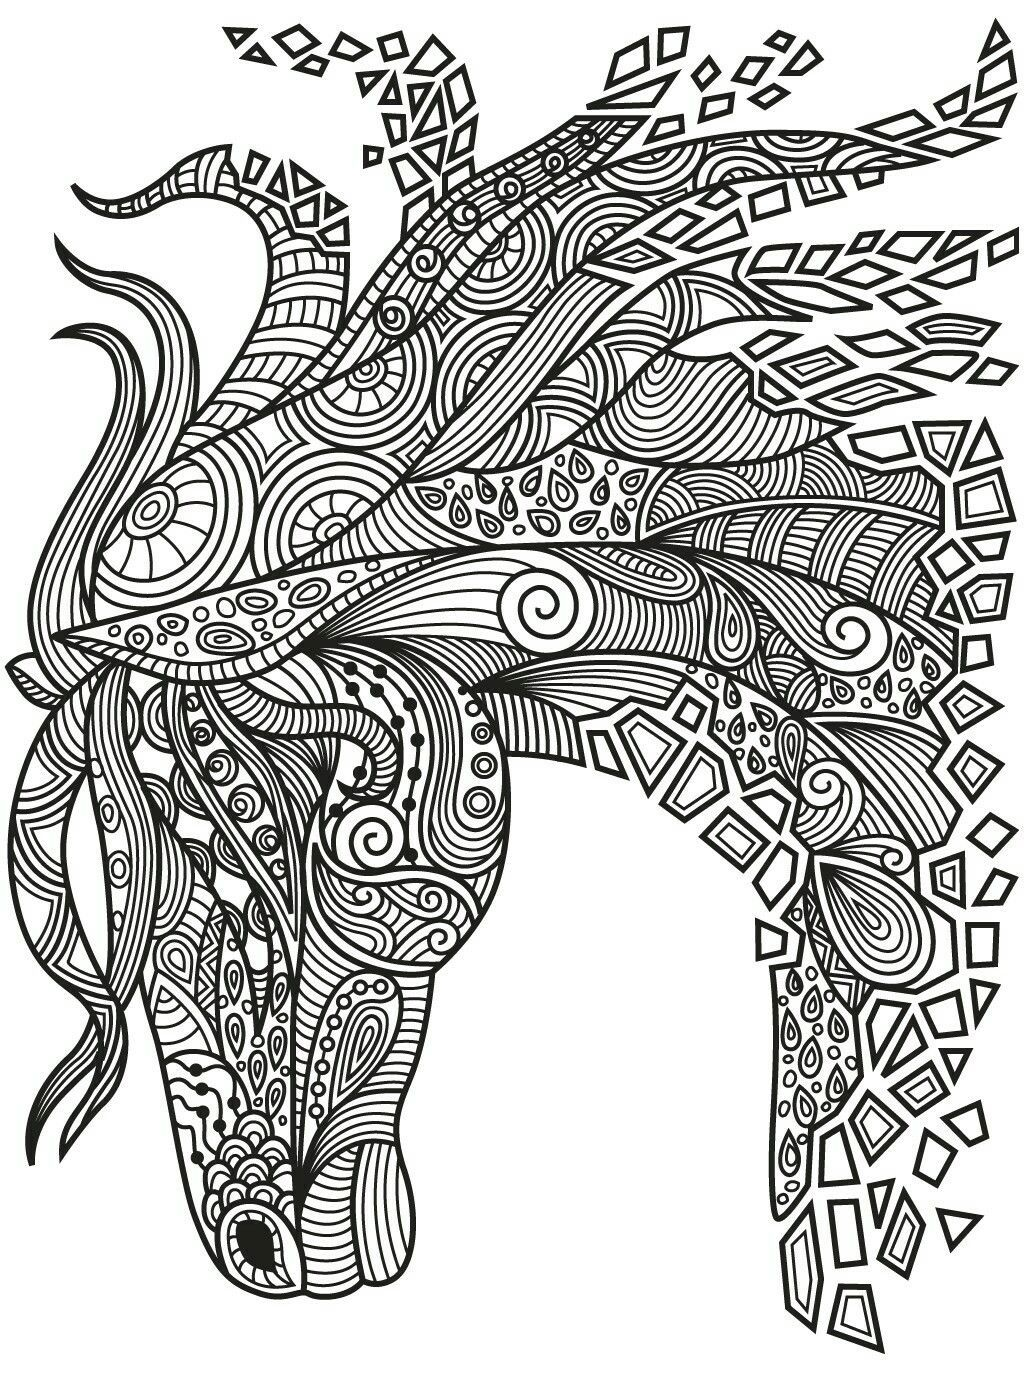 Best Zentangle Horse Colorish Coloring Book App For Adults ...